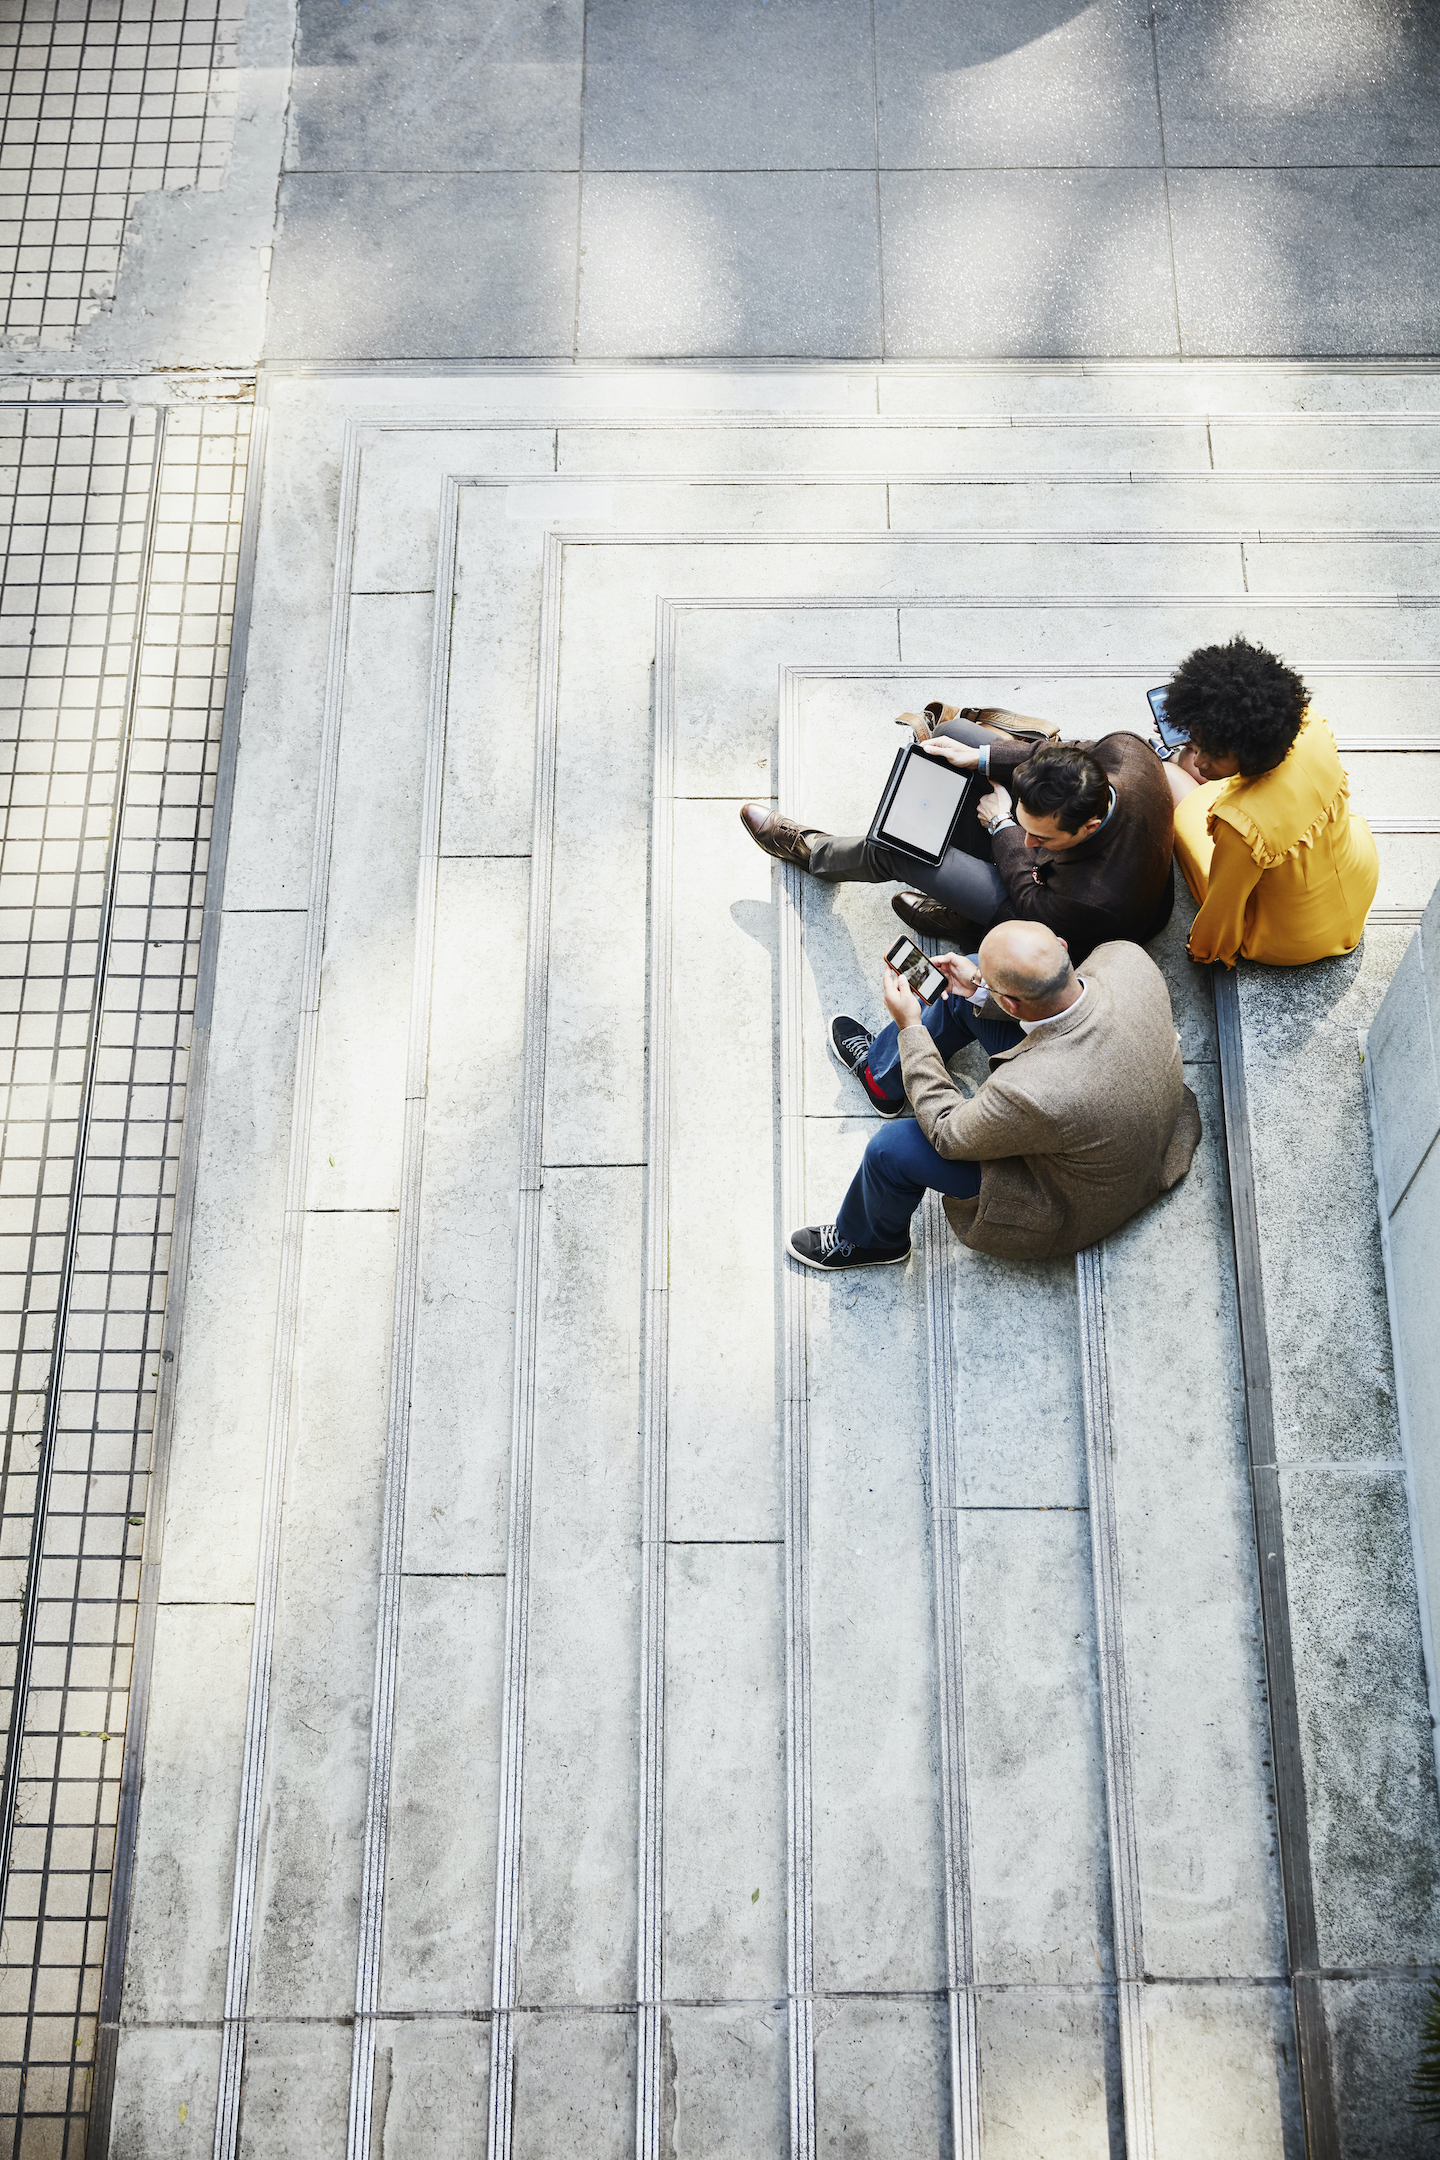 Group sitting on steps